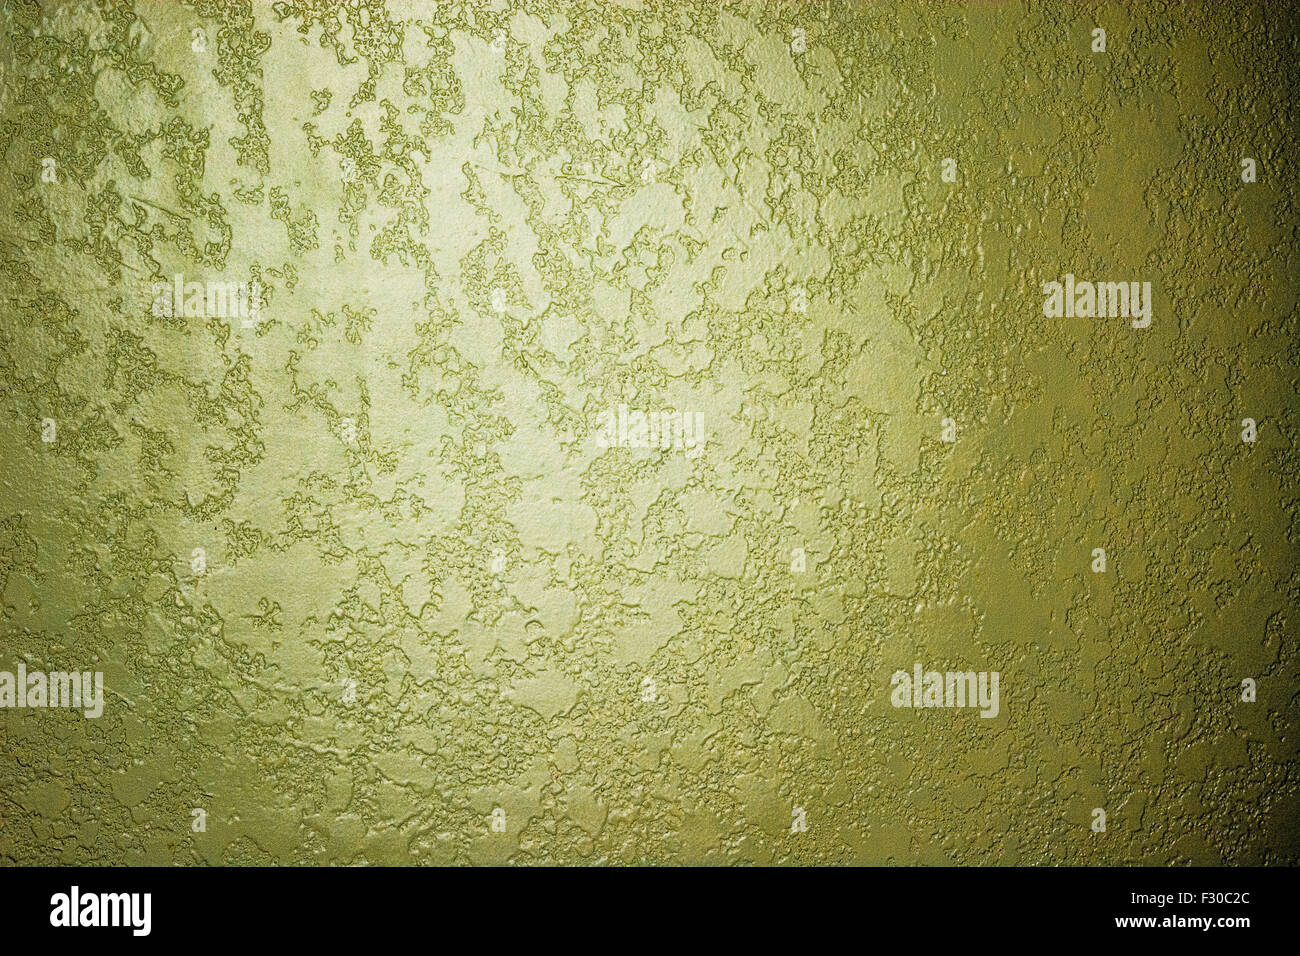 Gold Wall Paint Stock Photos & Gold Wall Paint Stock Images - Alamy